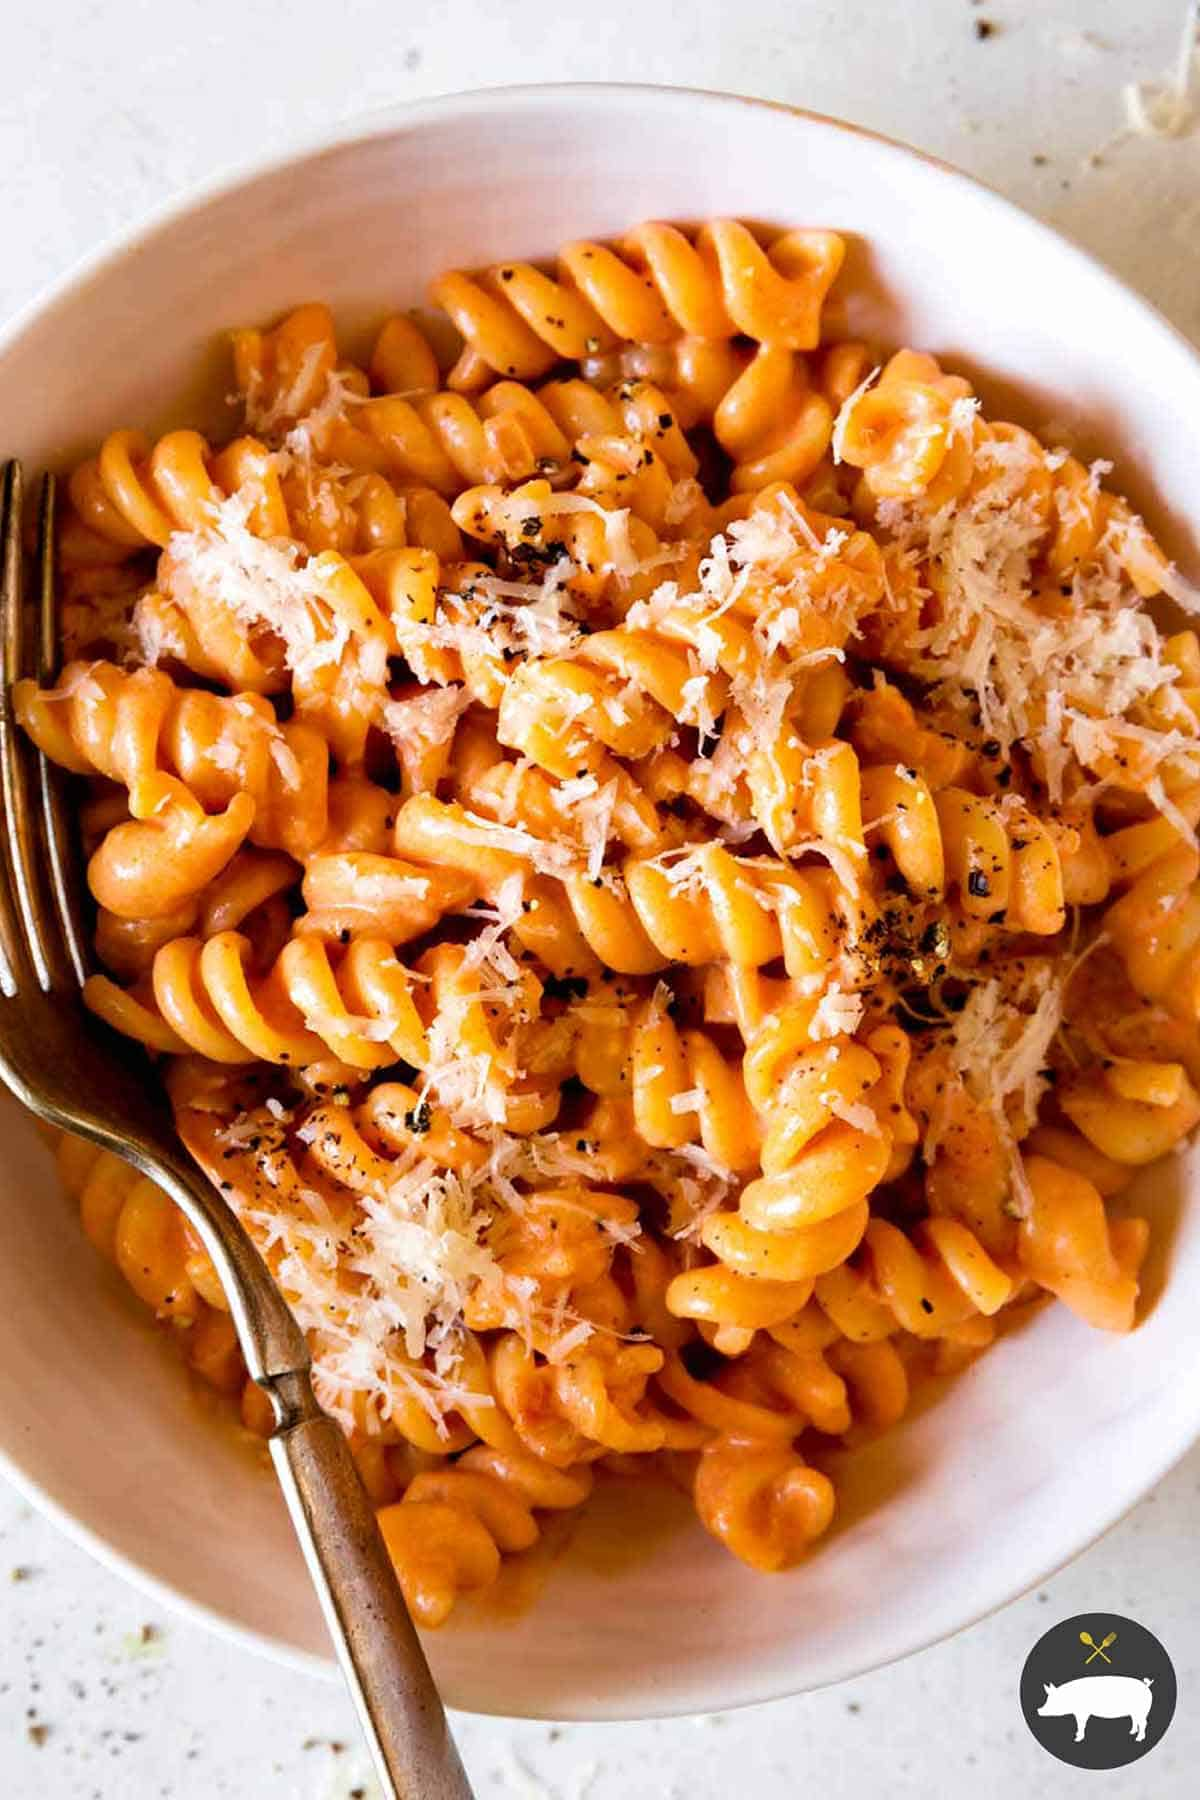 heaping bowl of finished rotini tossed in vodka sauce, topped with Parmesan and black pepper with fork off to side and small bowls of crushed red pepper flakes and more grated Parmesan